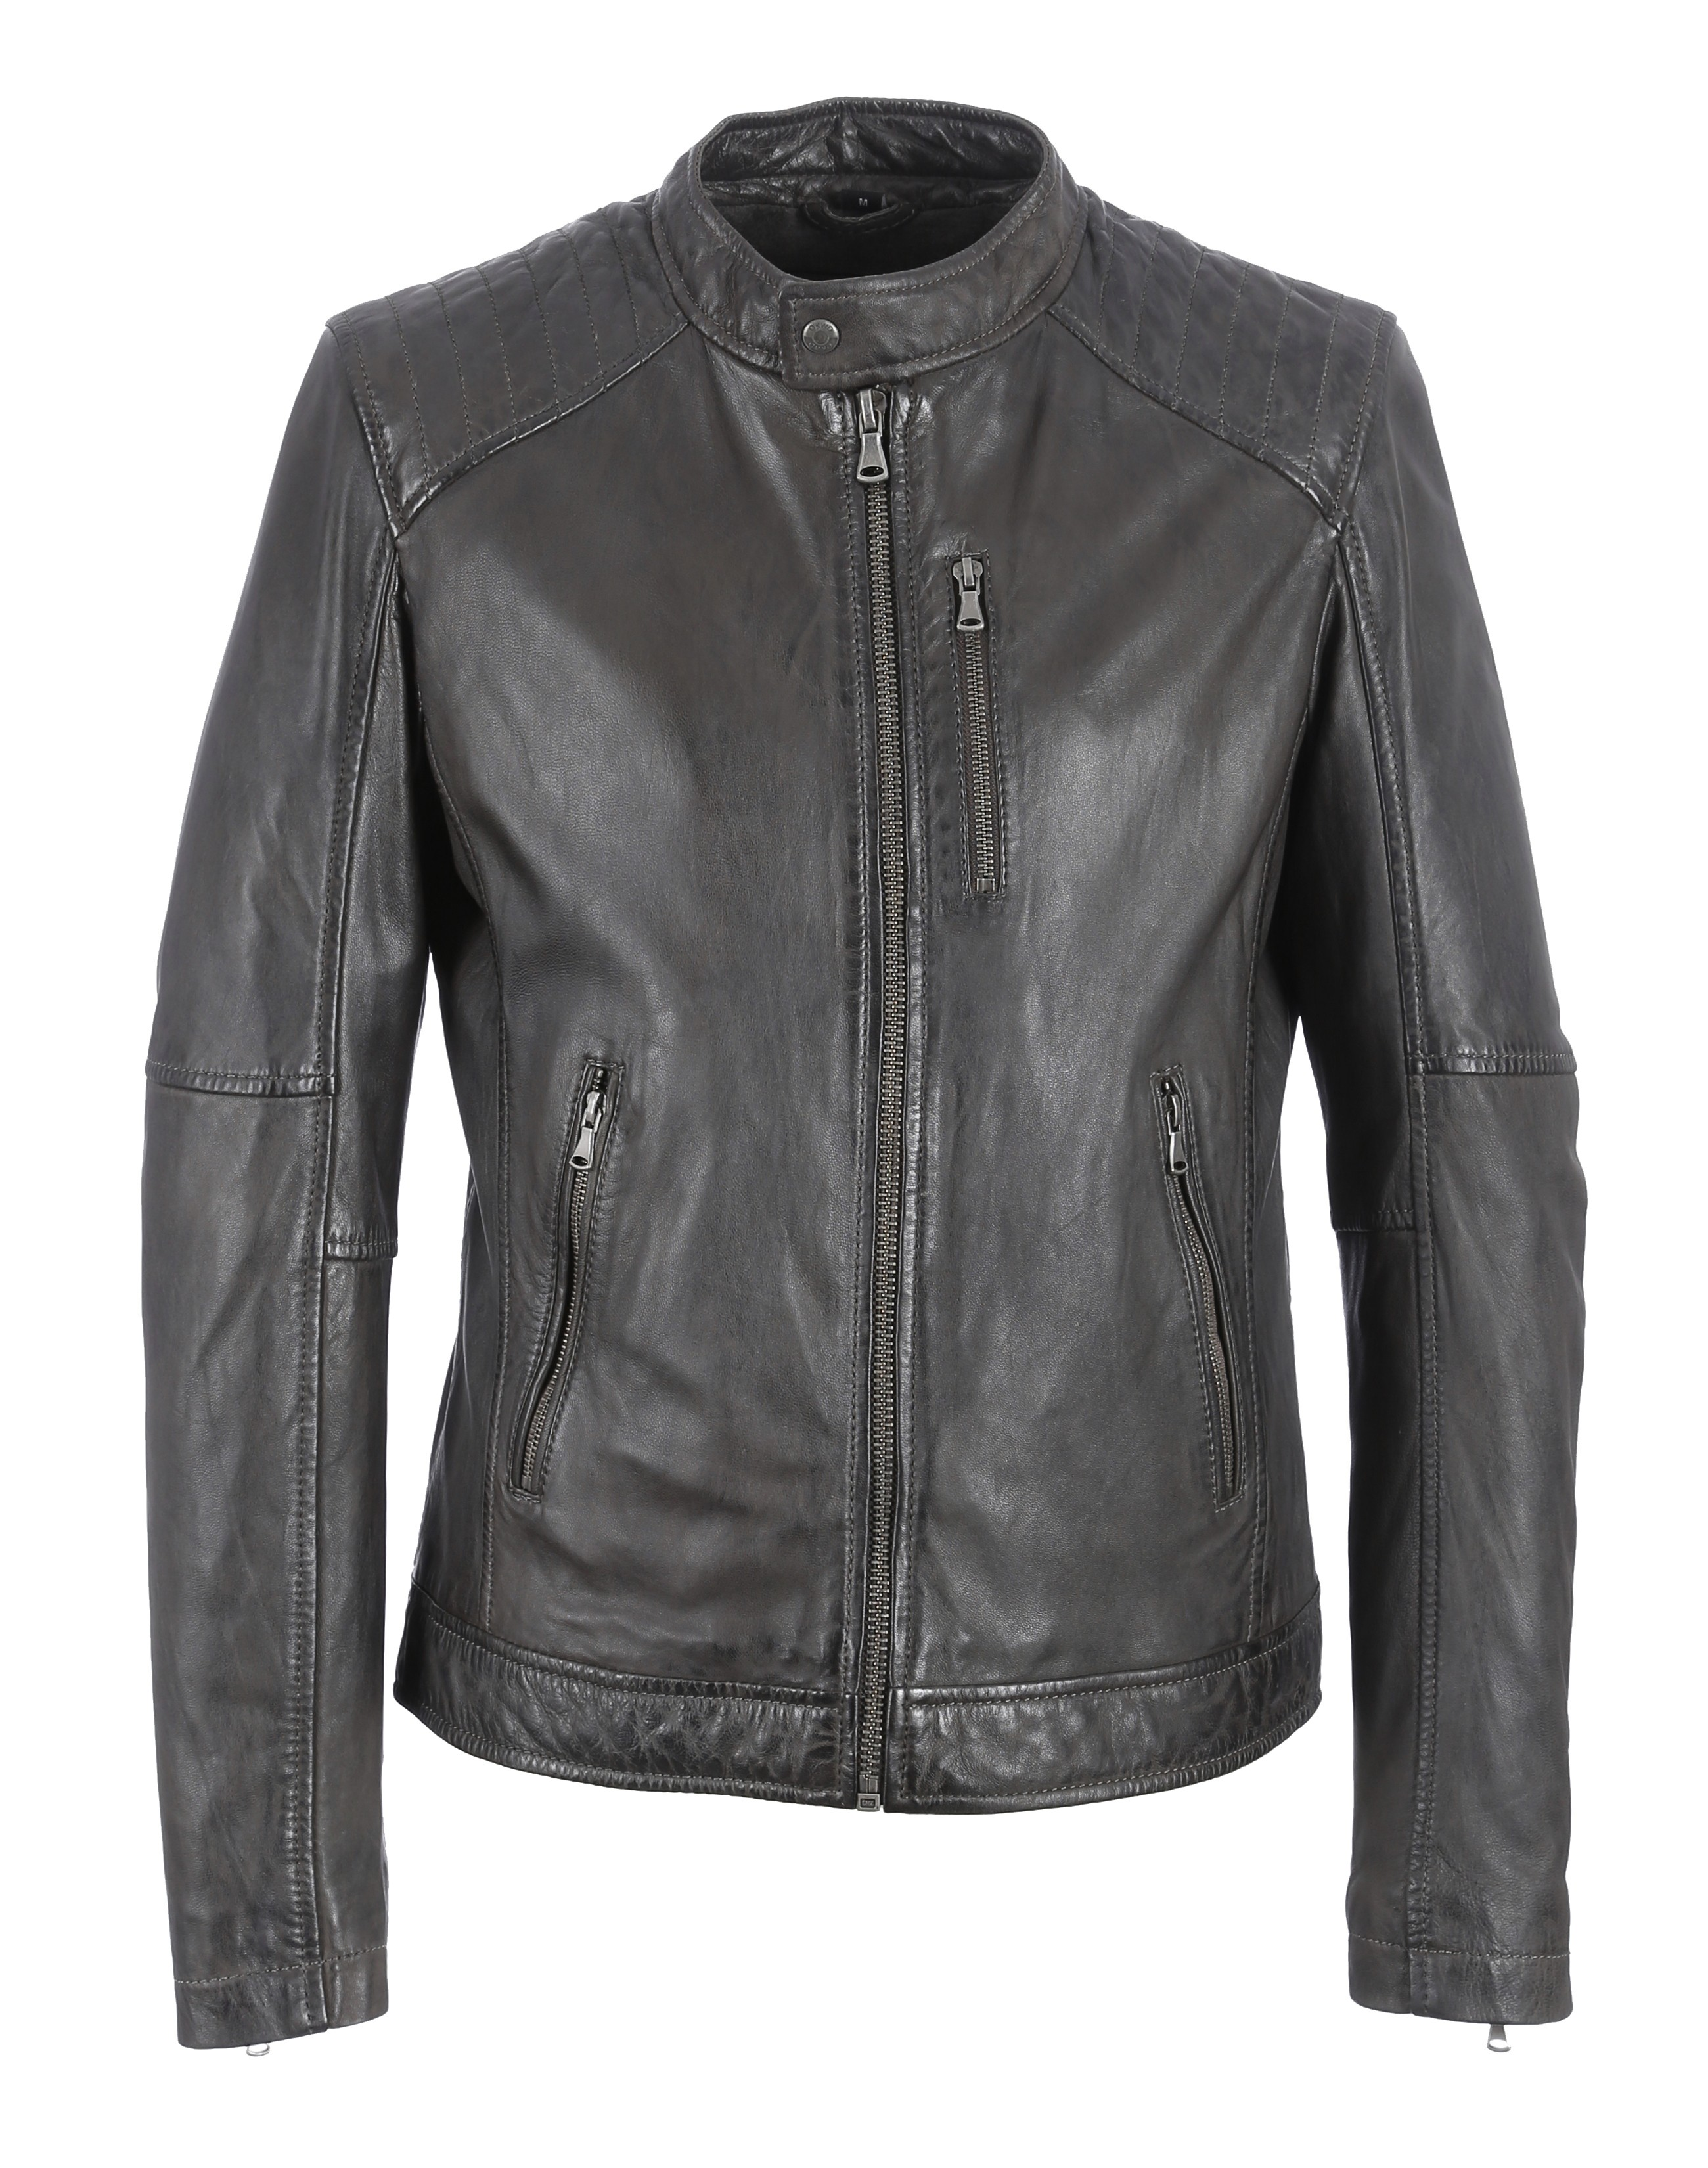 62058 - BLOUSON AGENCY MARRON - OAKWOOD - THE LEATHER BRAND 648bd151719b